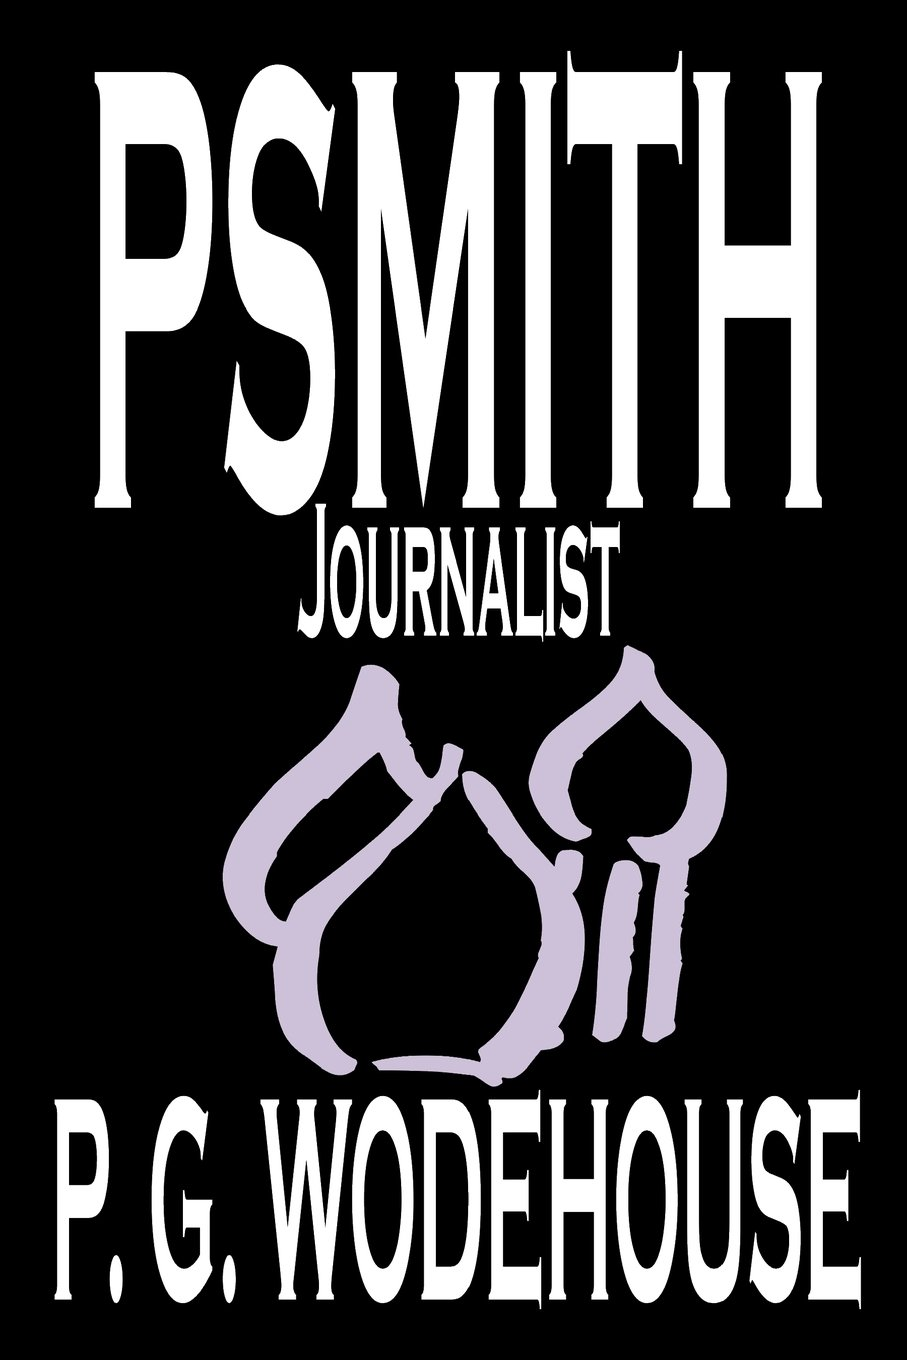 Download Psmith, Journalist by P. G. Wodehouse, Fiction, Literary, Humorous (Wildside Classic) PDF